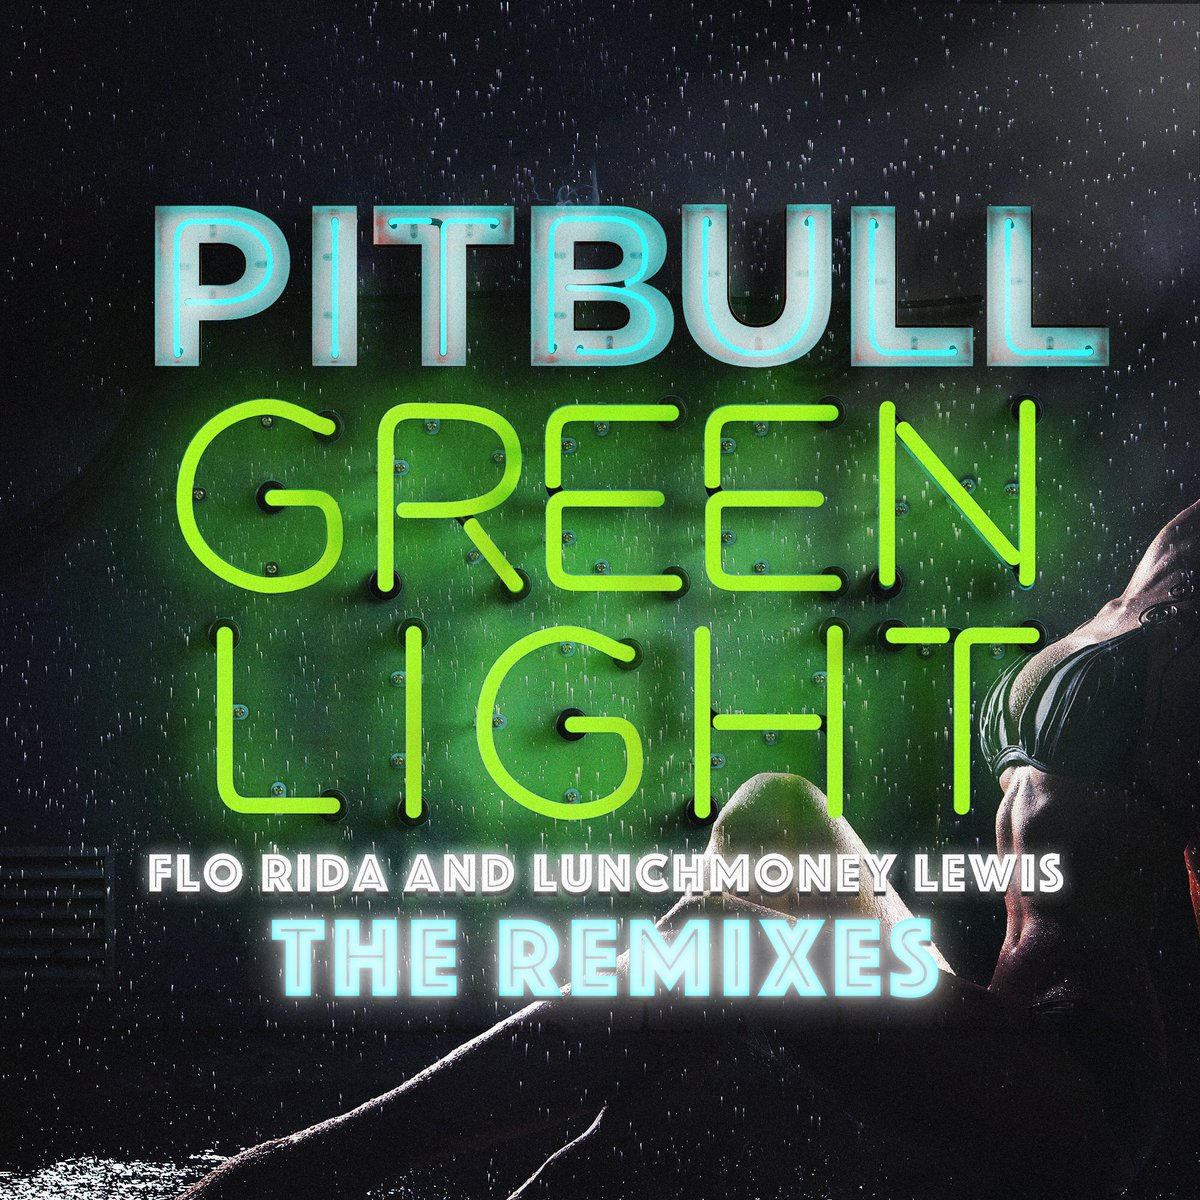 Time to get in gear with #GreenLight remixes on @AppleMusic...3,2,1 #Dale  https://t.co/SIugumjZD7 https://t.co/PG1bccBveS